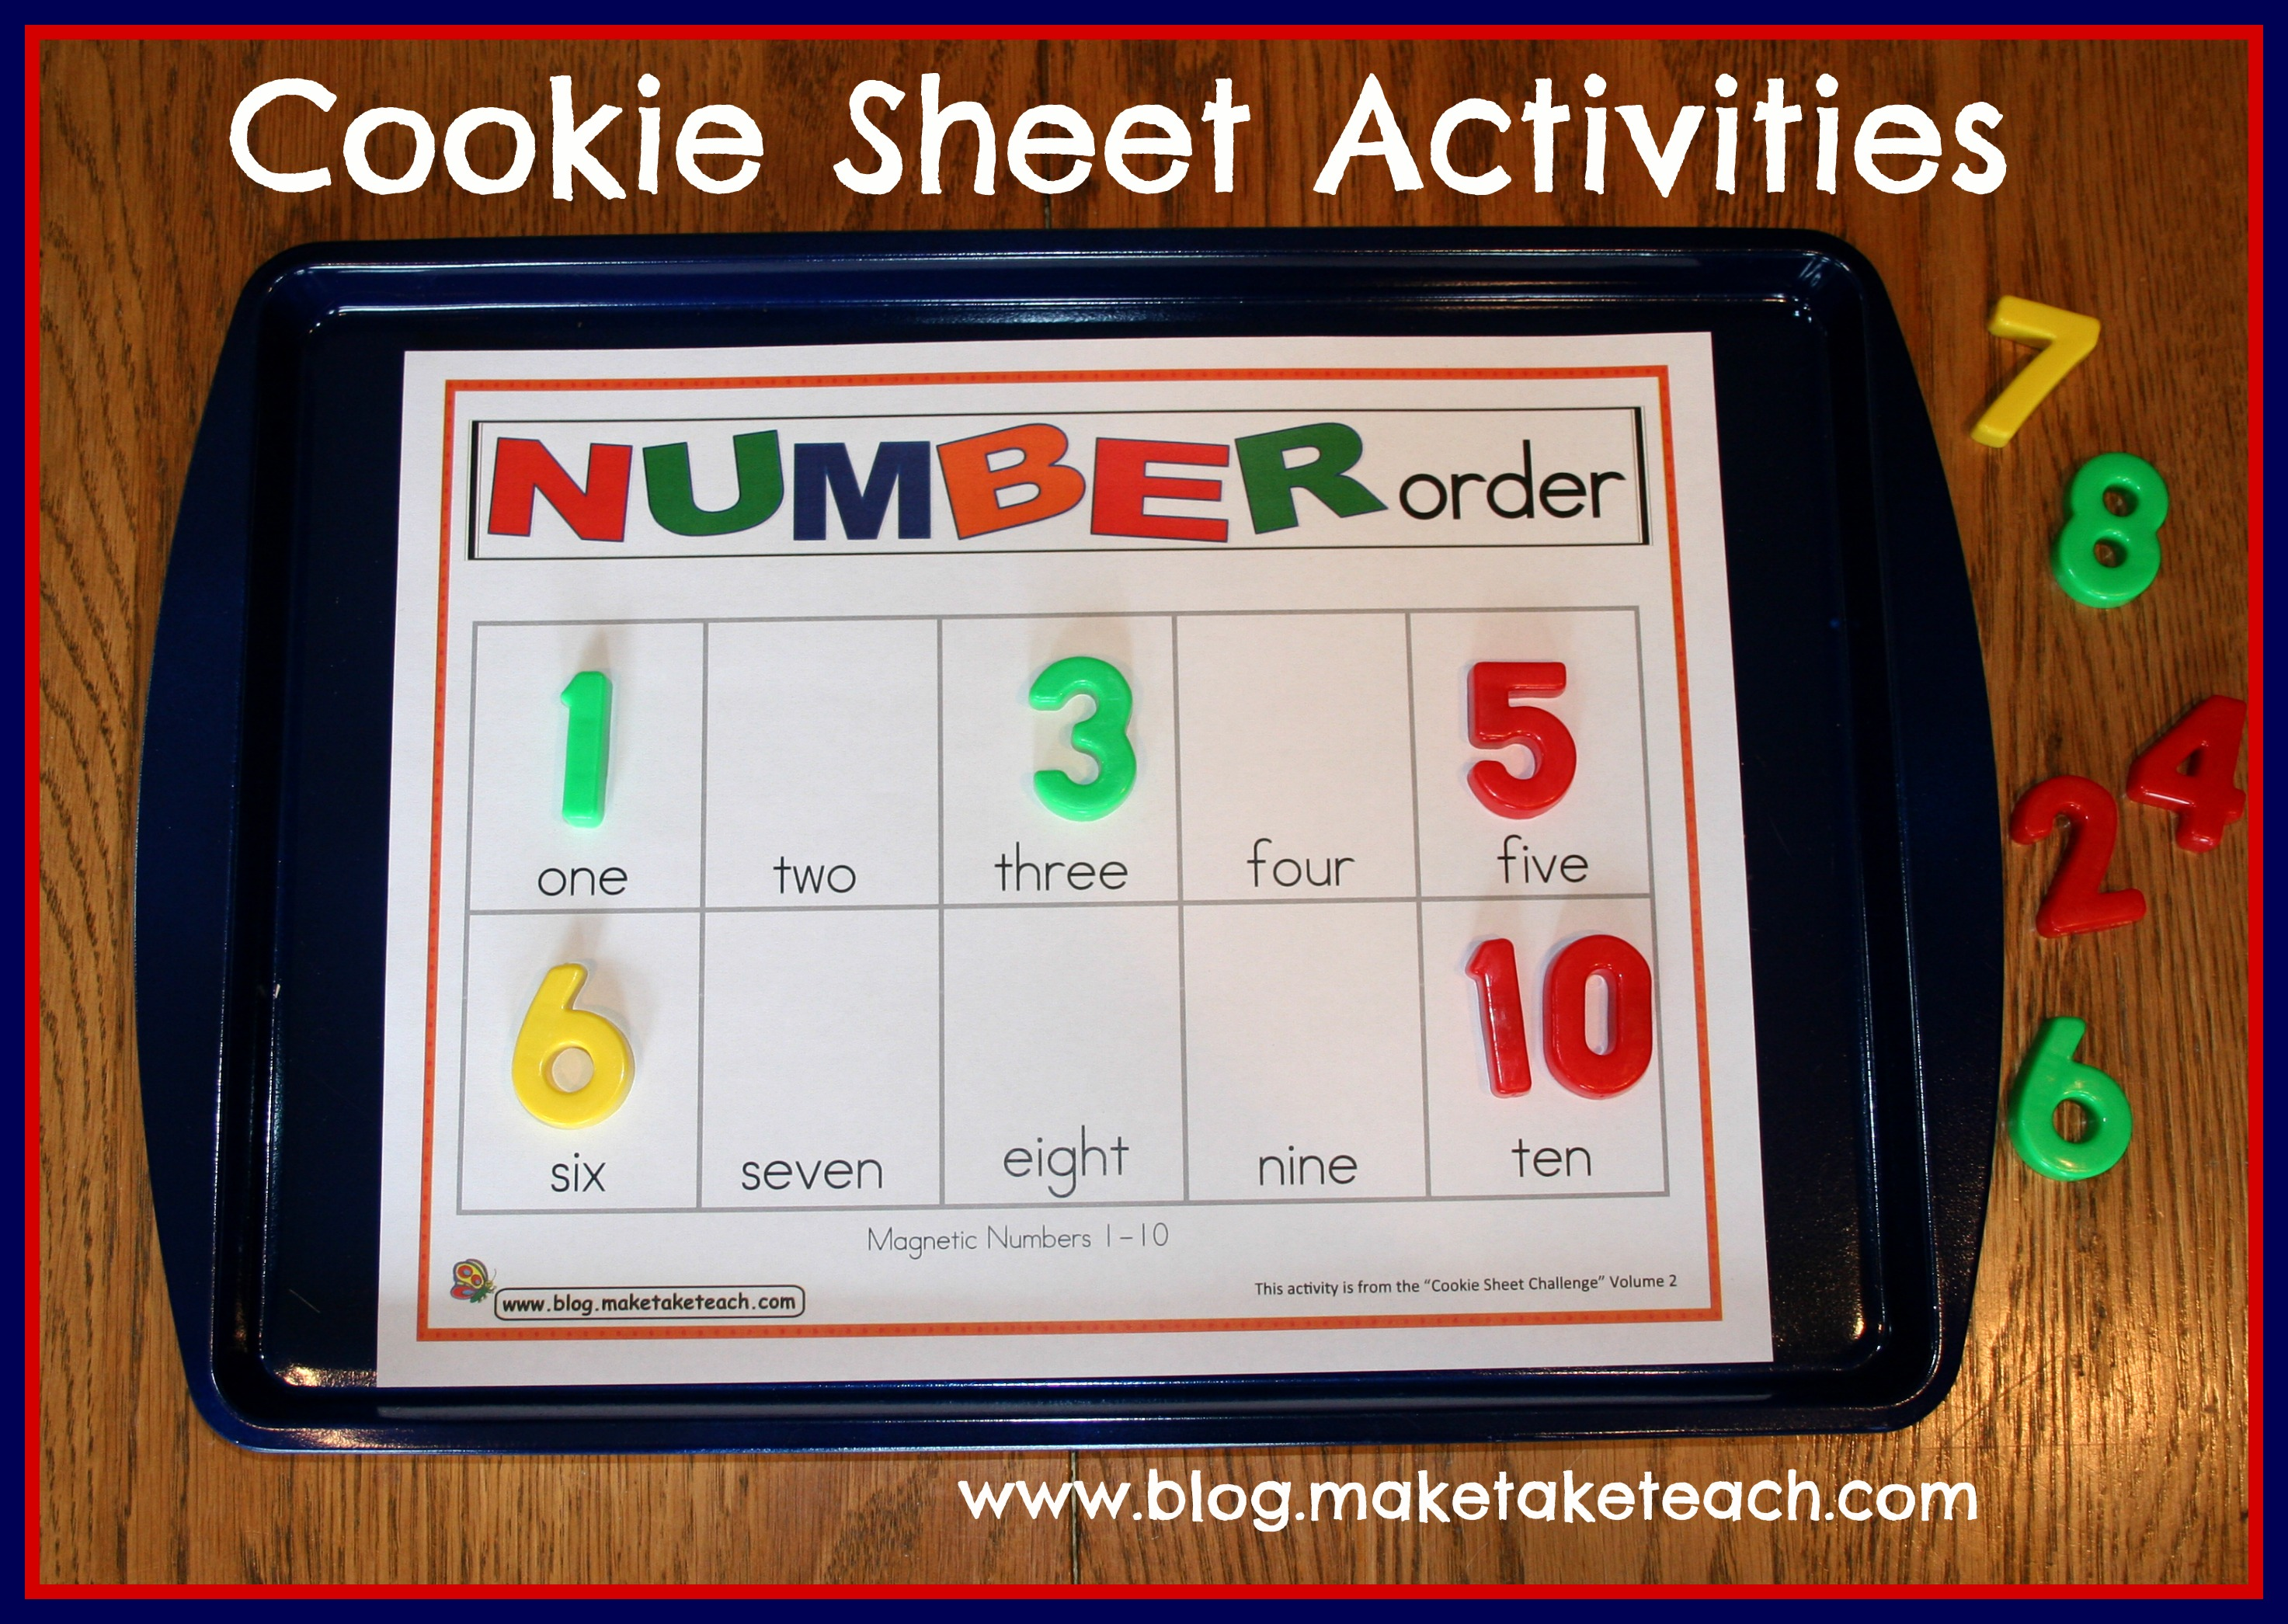 Cookie Sheet Challenge Volume 2 Number Order Number